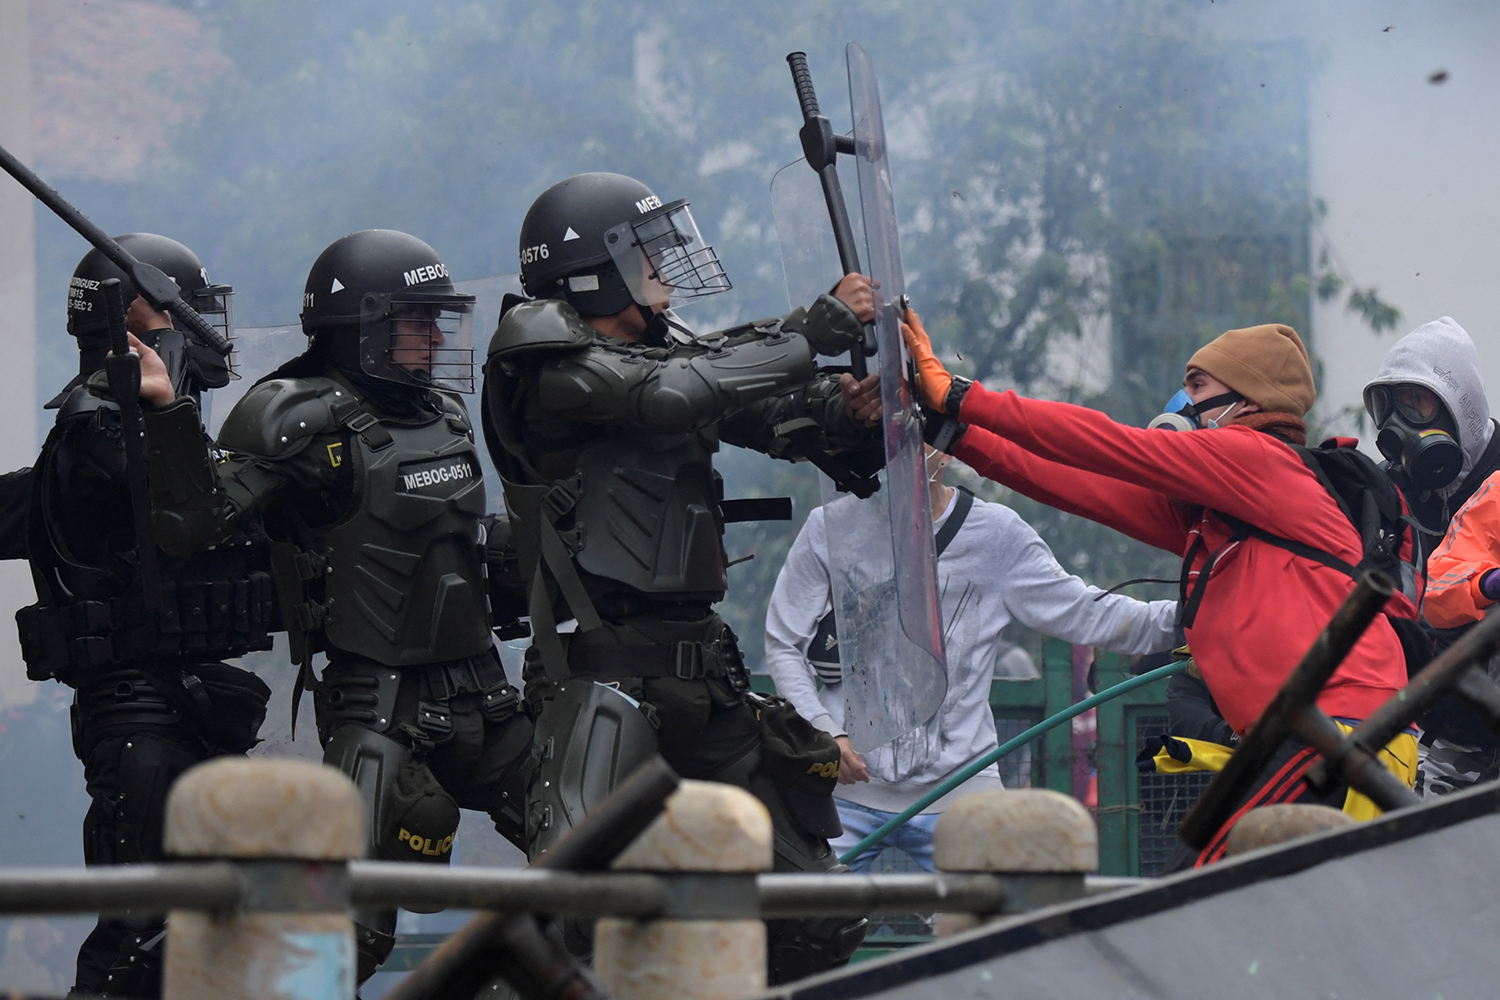 Demonstrators clash with police during a protest against tax reform in Bogota, Colombia, on April 28. RAUL ARBOLEDA/AFP via Getty Images